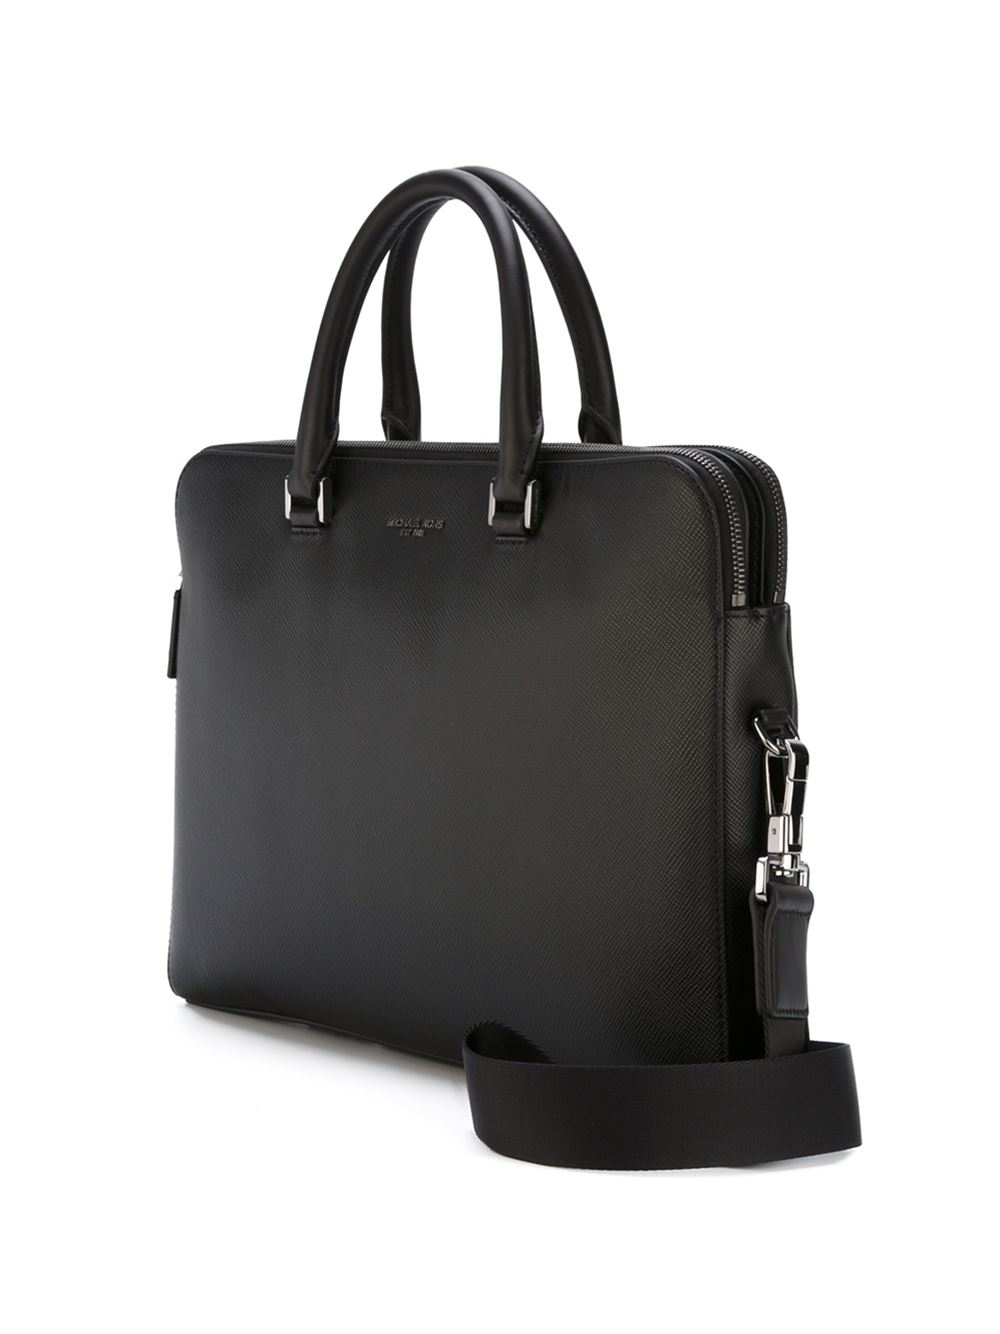 Michael kors Classic Briefcase in Black for Men